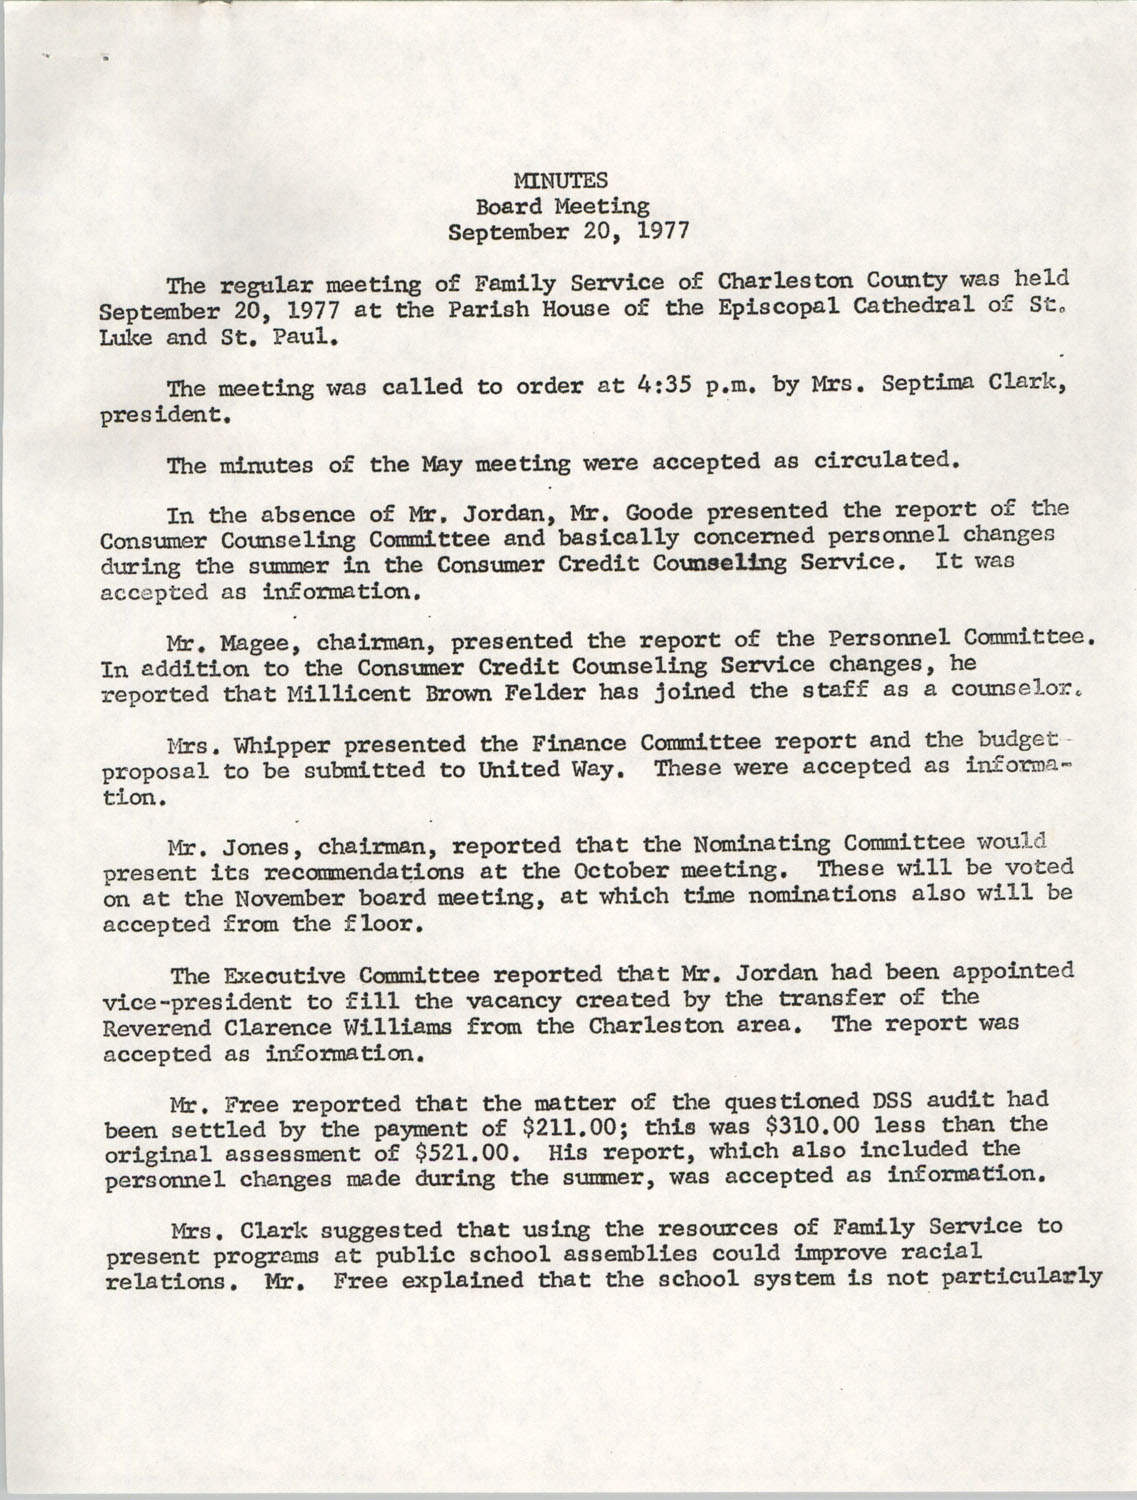 Minutes, Family Service Board Meeting, September 20, 1977